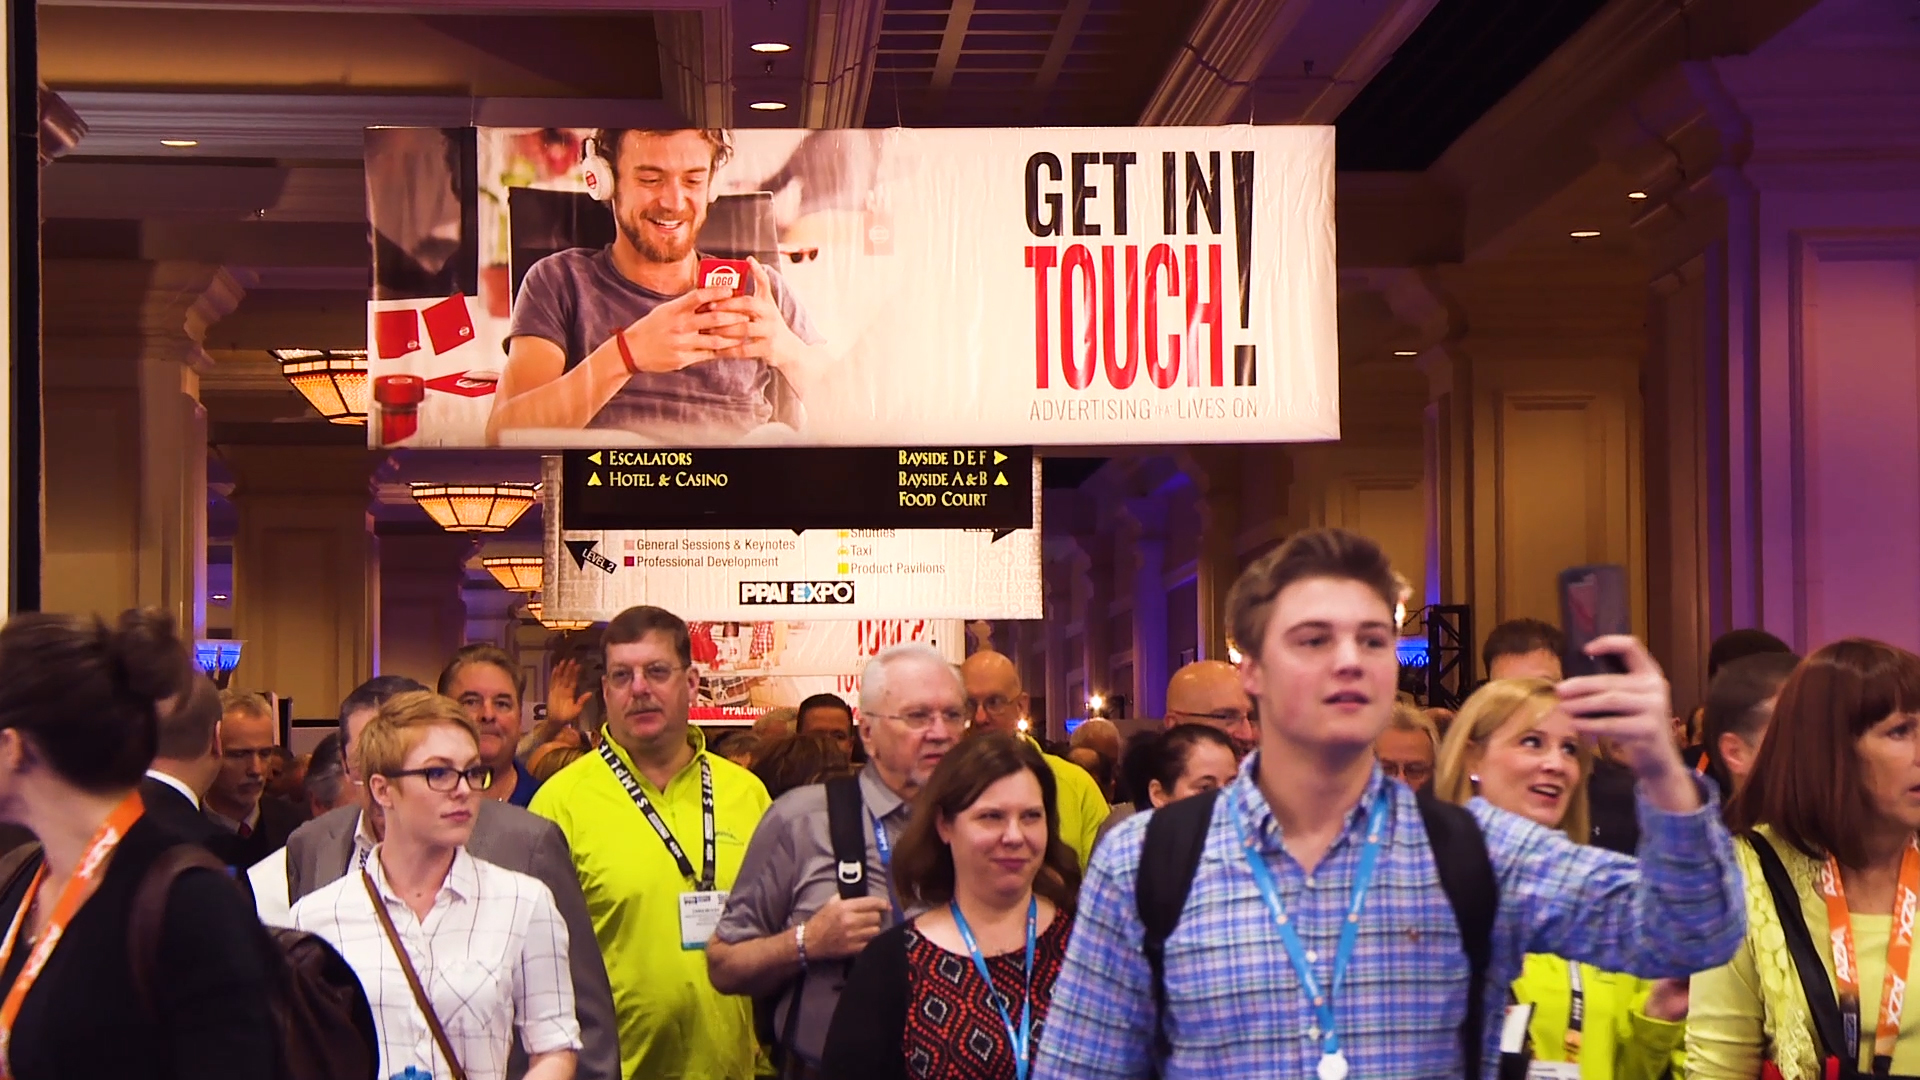 The PPAI Expo 2018 Underscores The Power Of Promotion